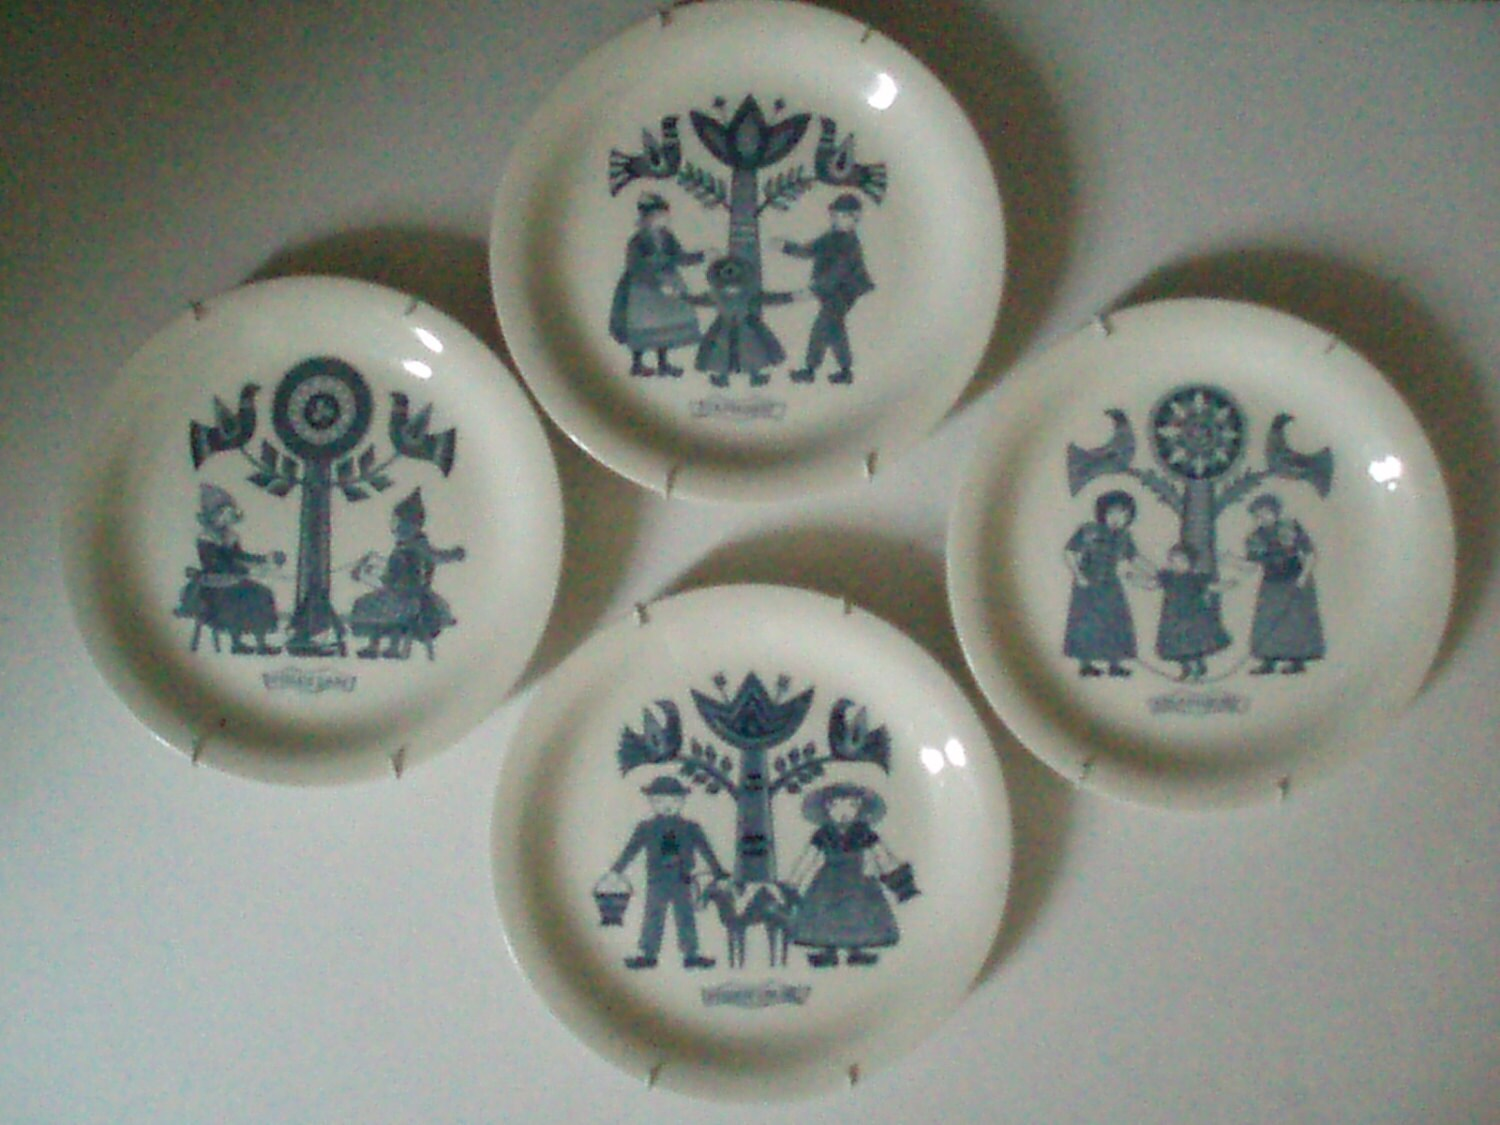 Menq Interieur Spakenburg Royal Sphinx Pajong Blue Maastricht Fine Bone China Replacement China Made In Holland